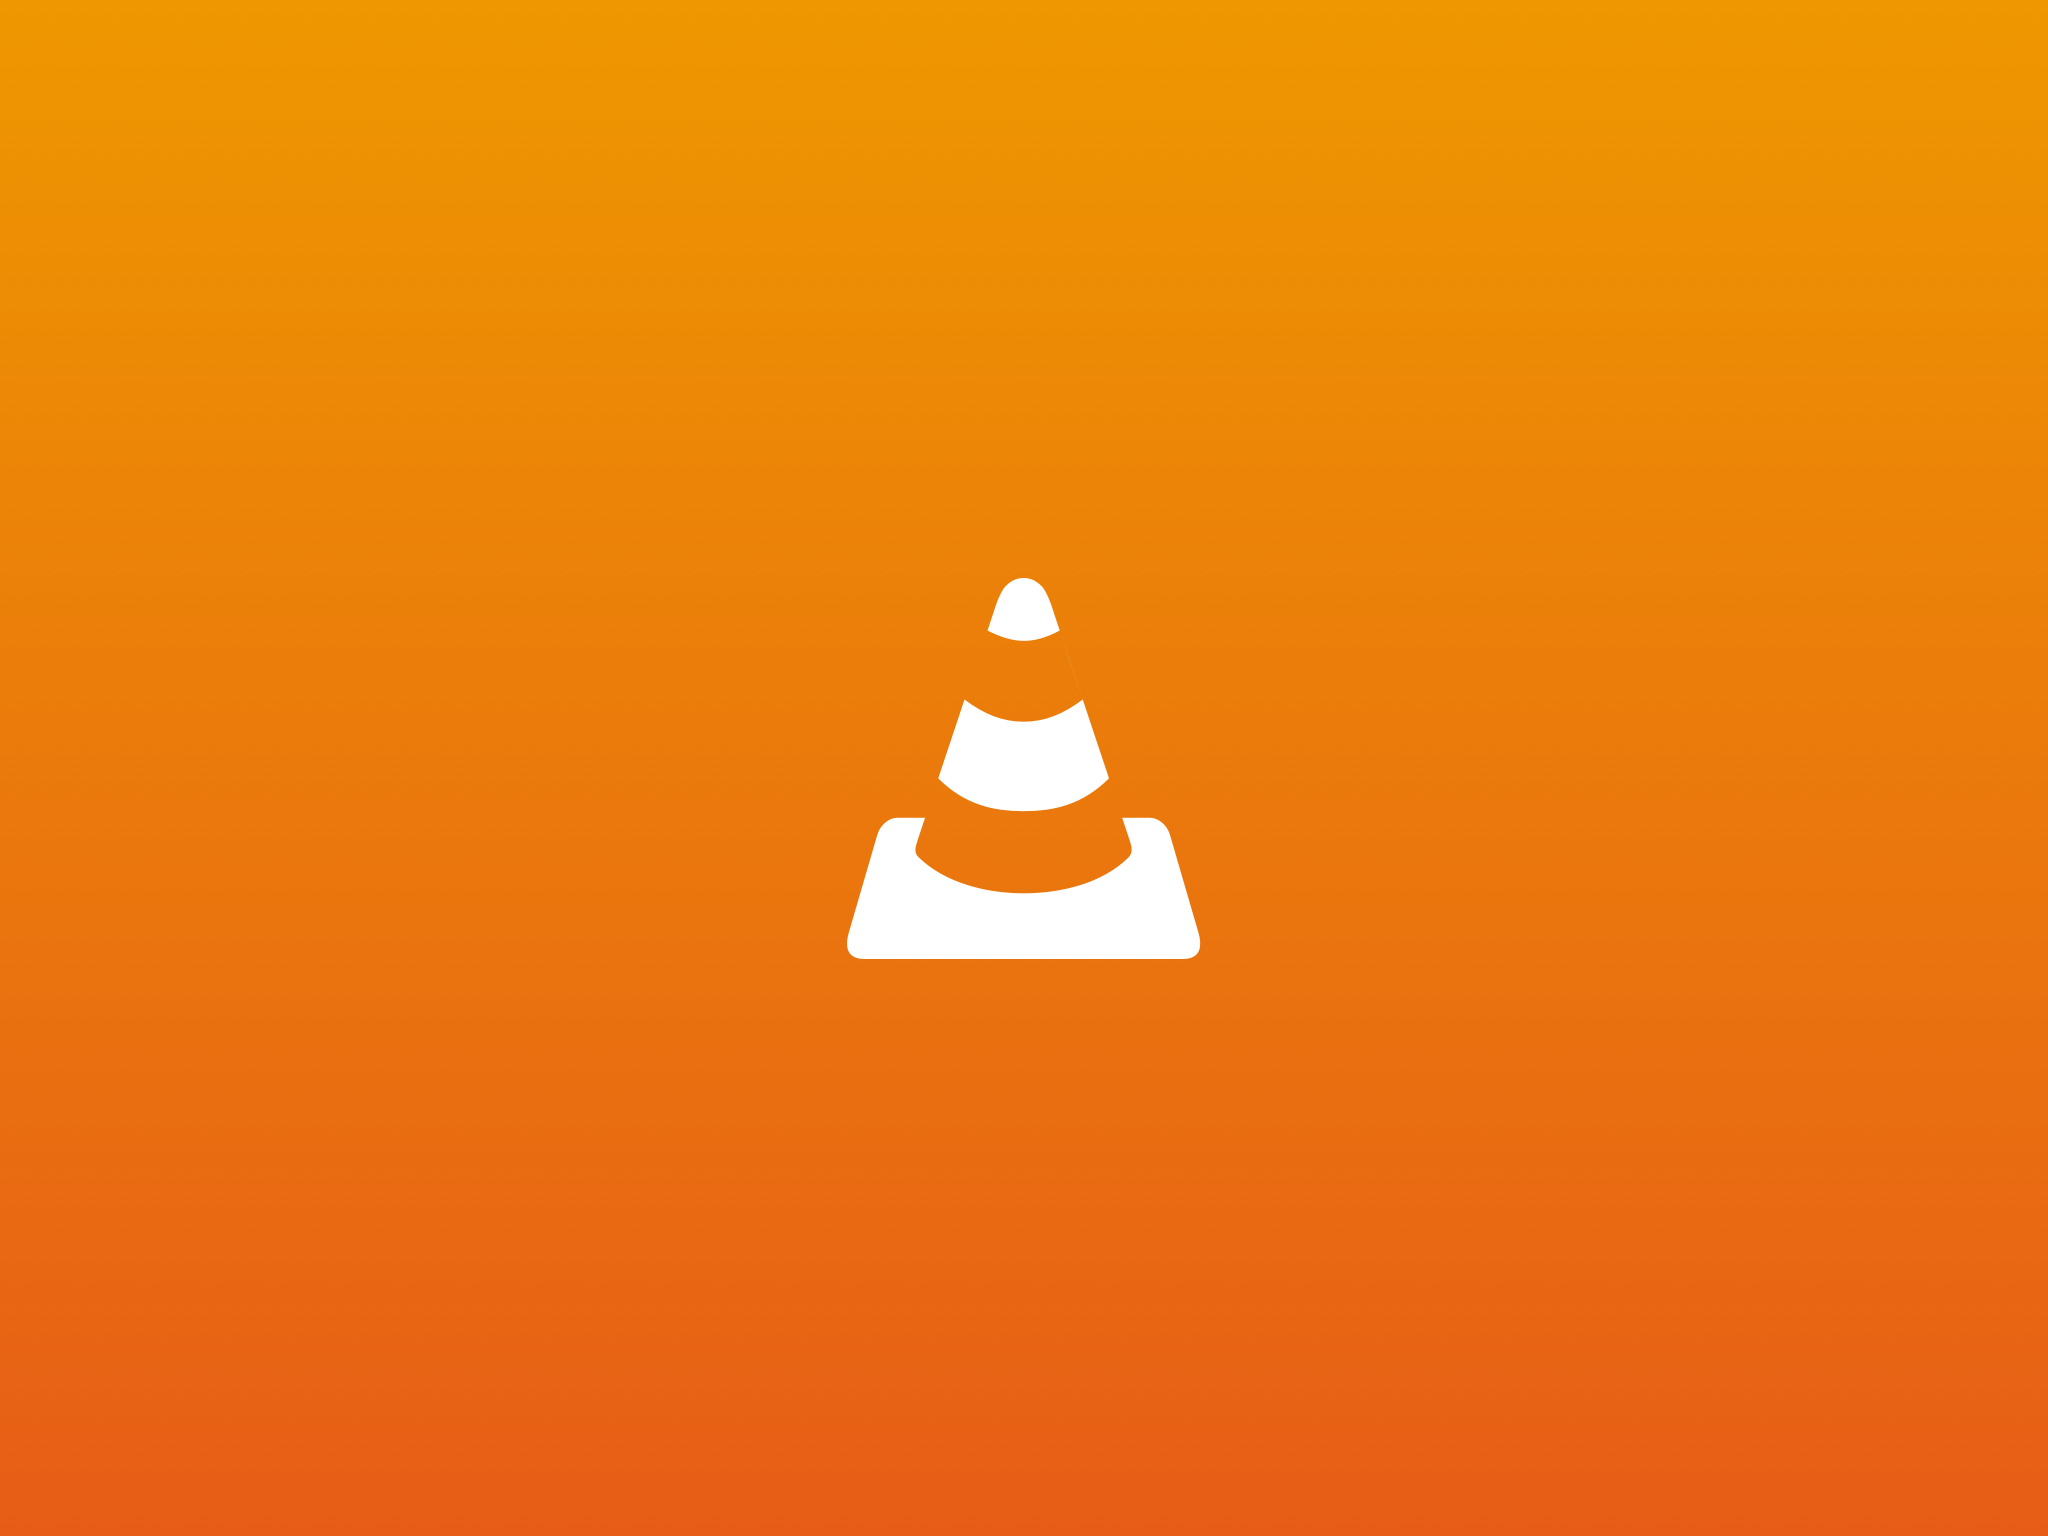 vlc-ios/Images.xcassets/LaunchImage.launchimage/iPad-Landscape@2x-1.png